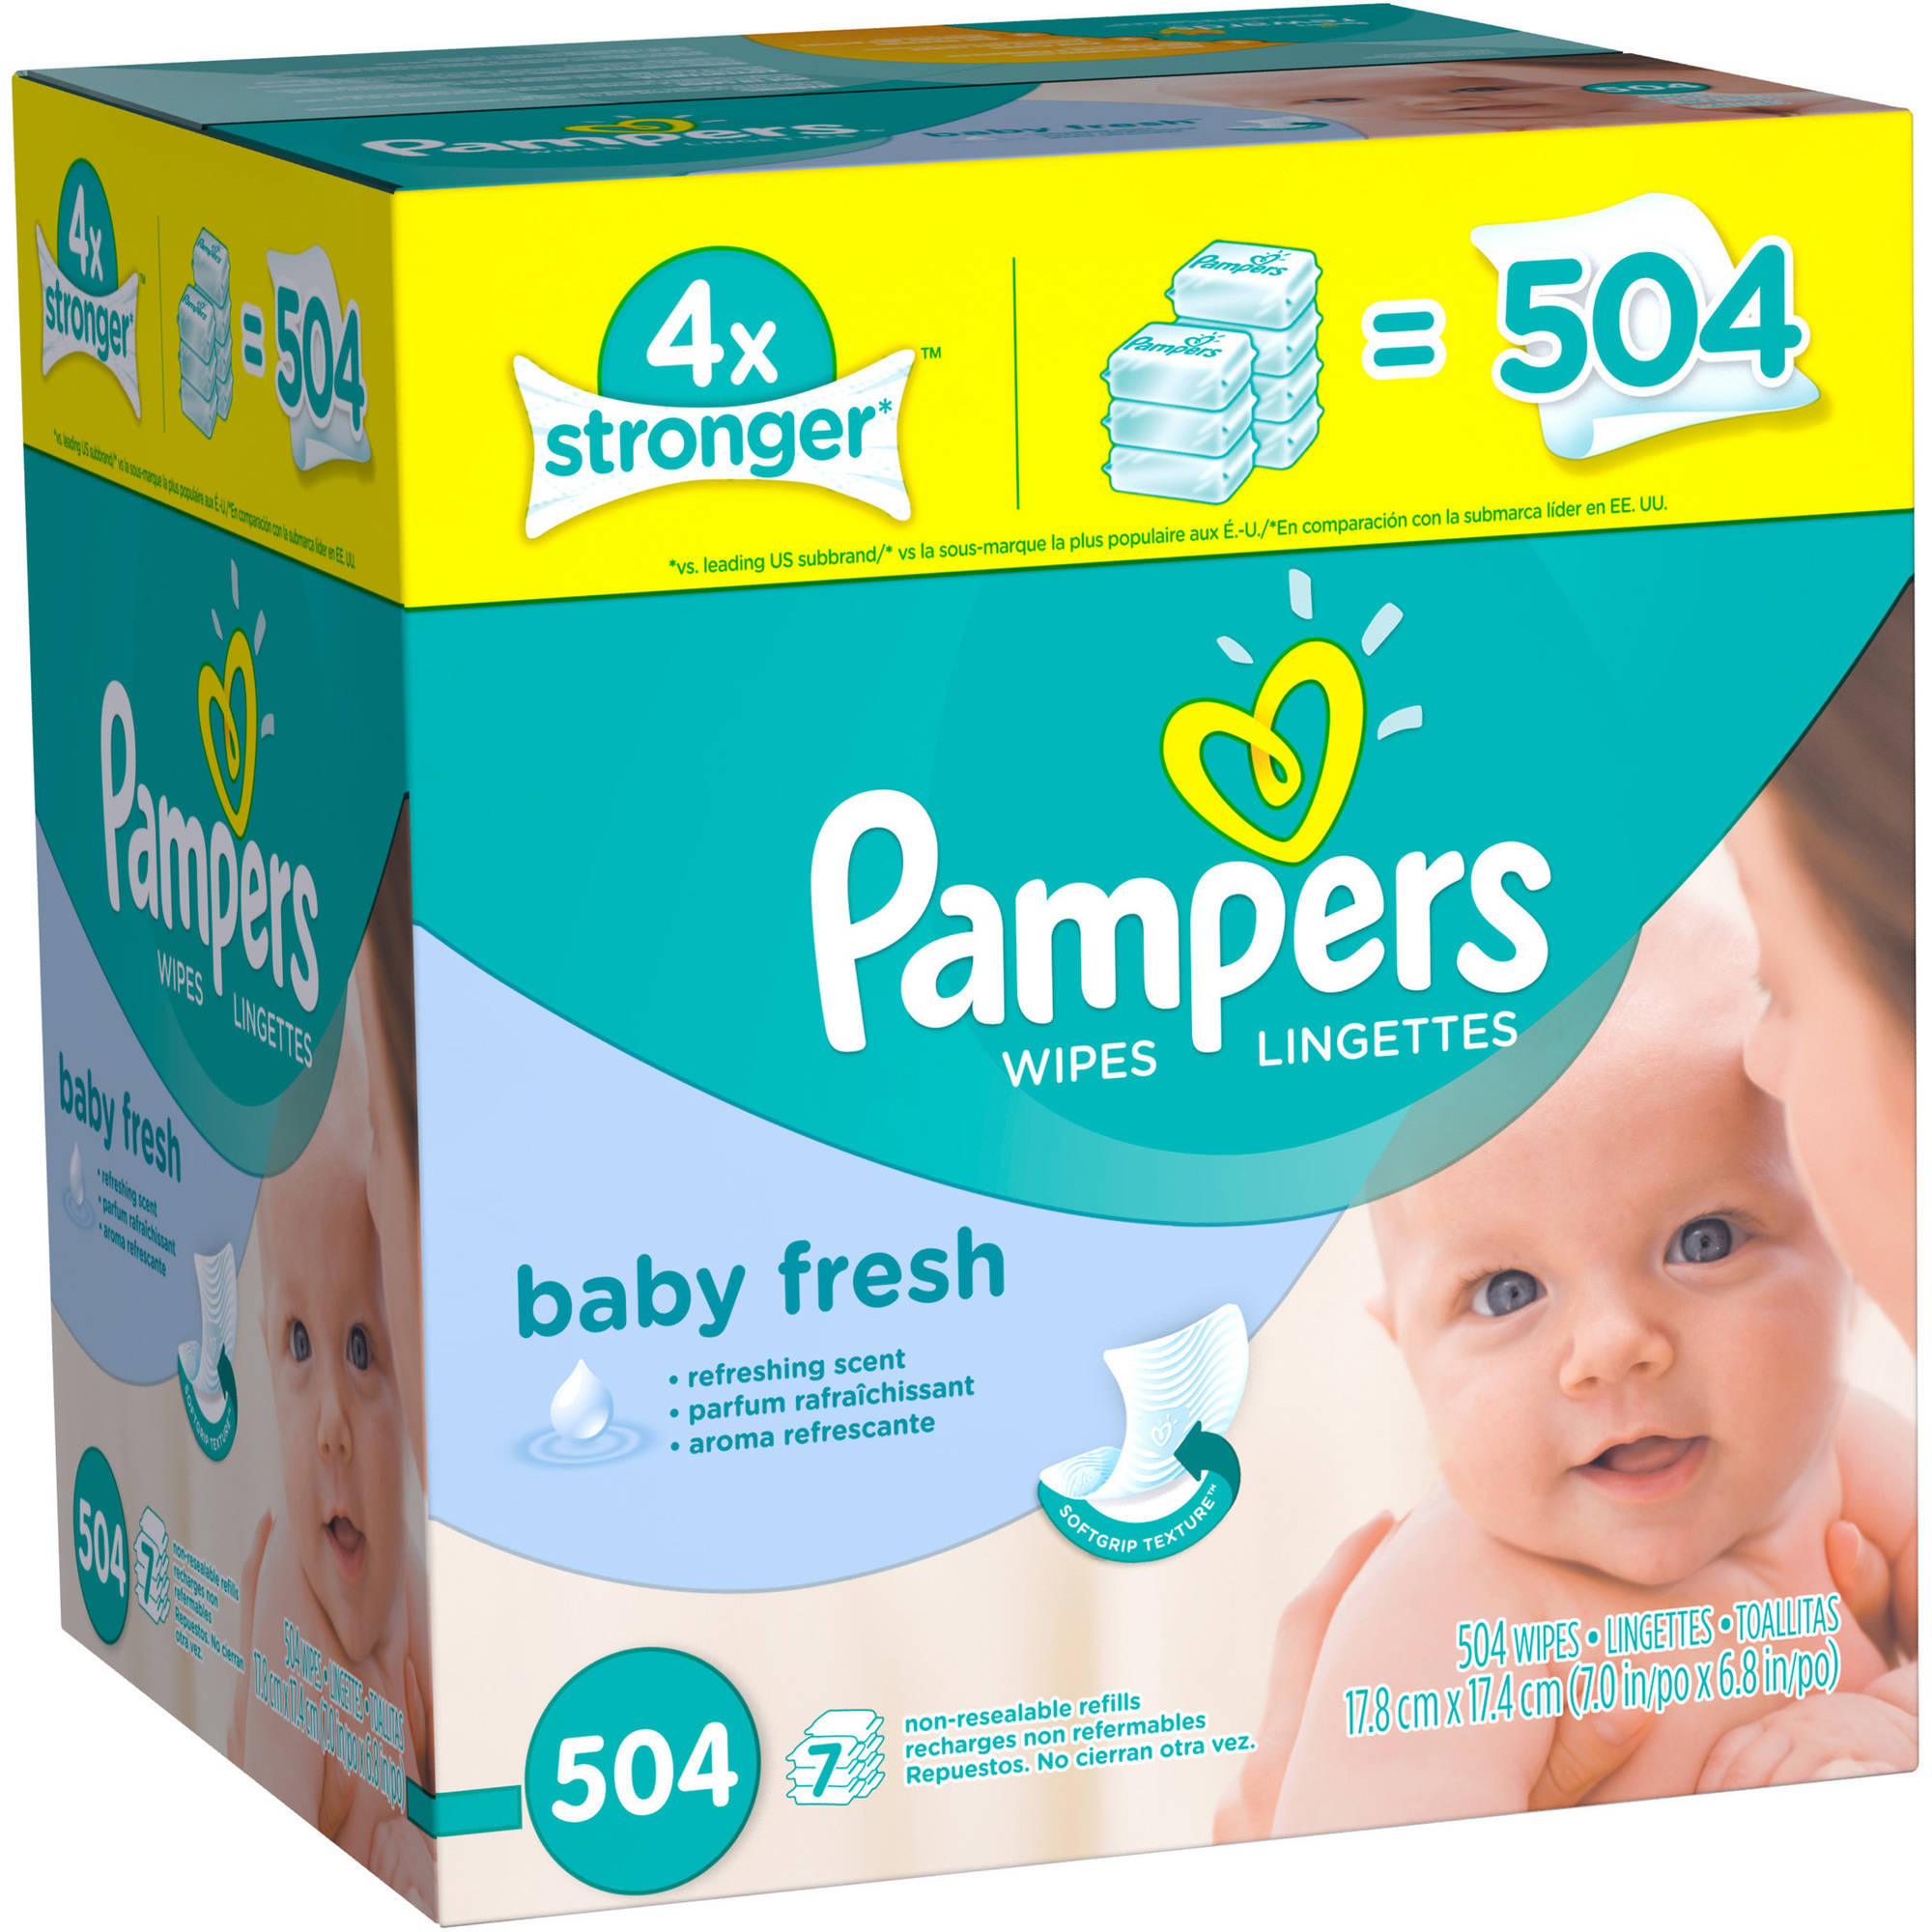 Pampers Baby Fresh Wipes Refills, Scented, 7 Packs of 72 (504 count) by Pampers